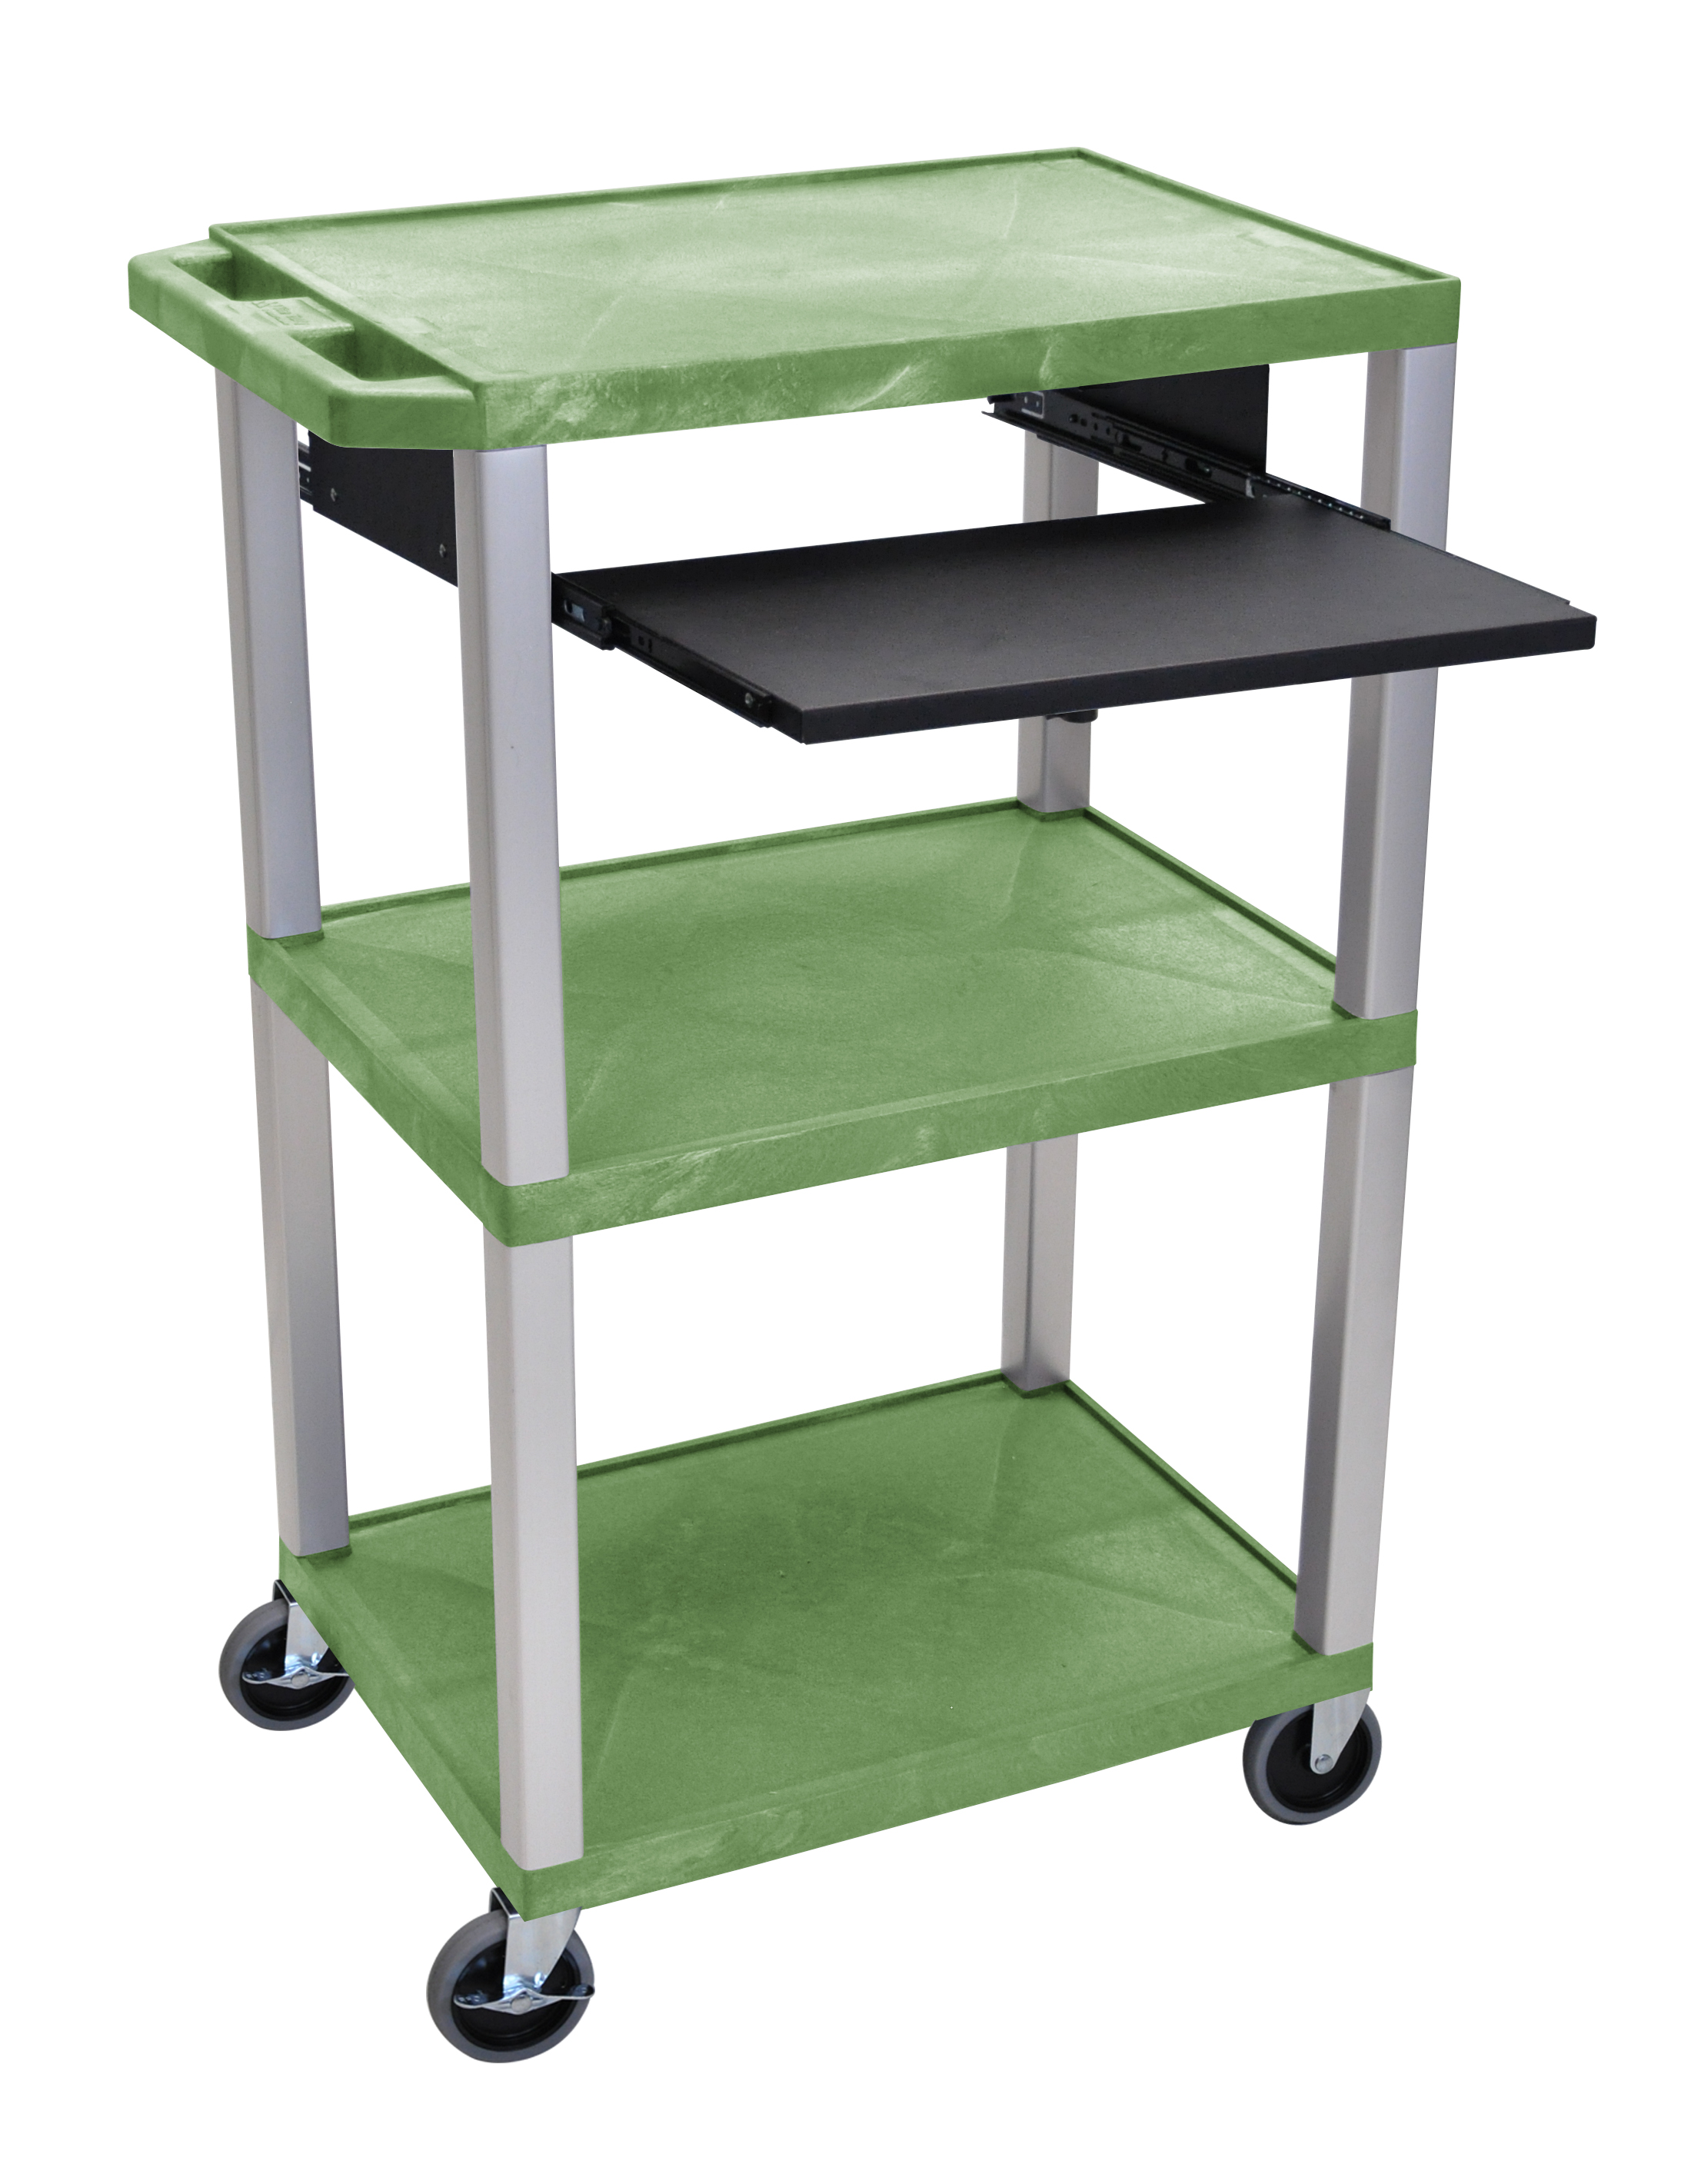 Offex Presentation Cart with Open Shelves and Pull Out Tray Green and Nickel